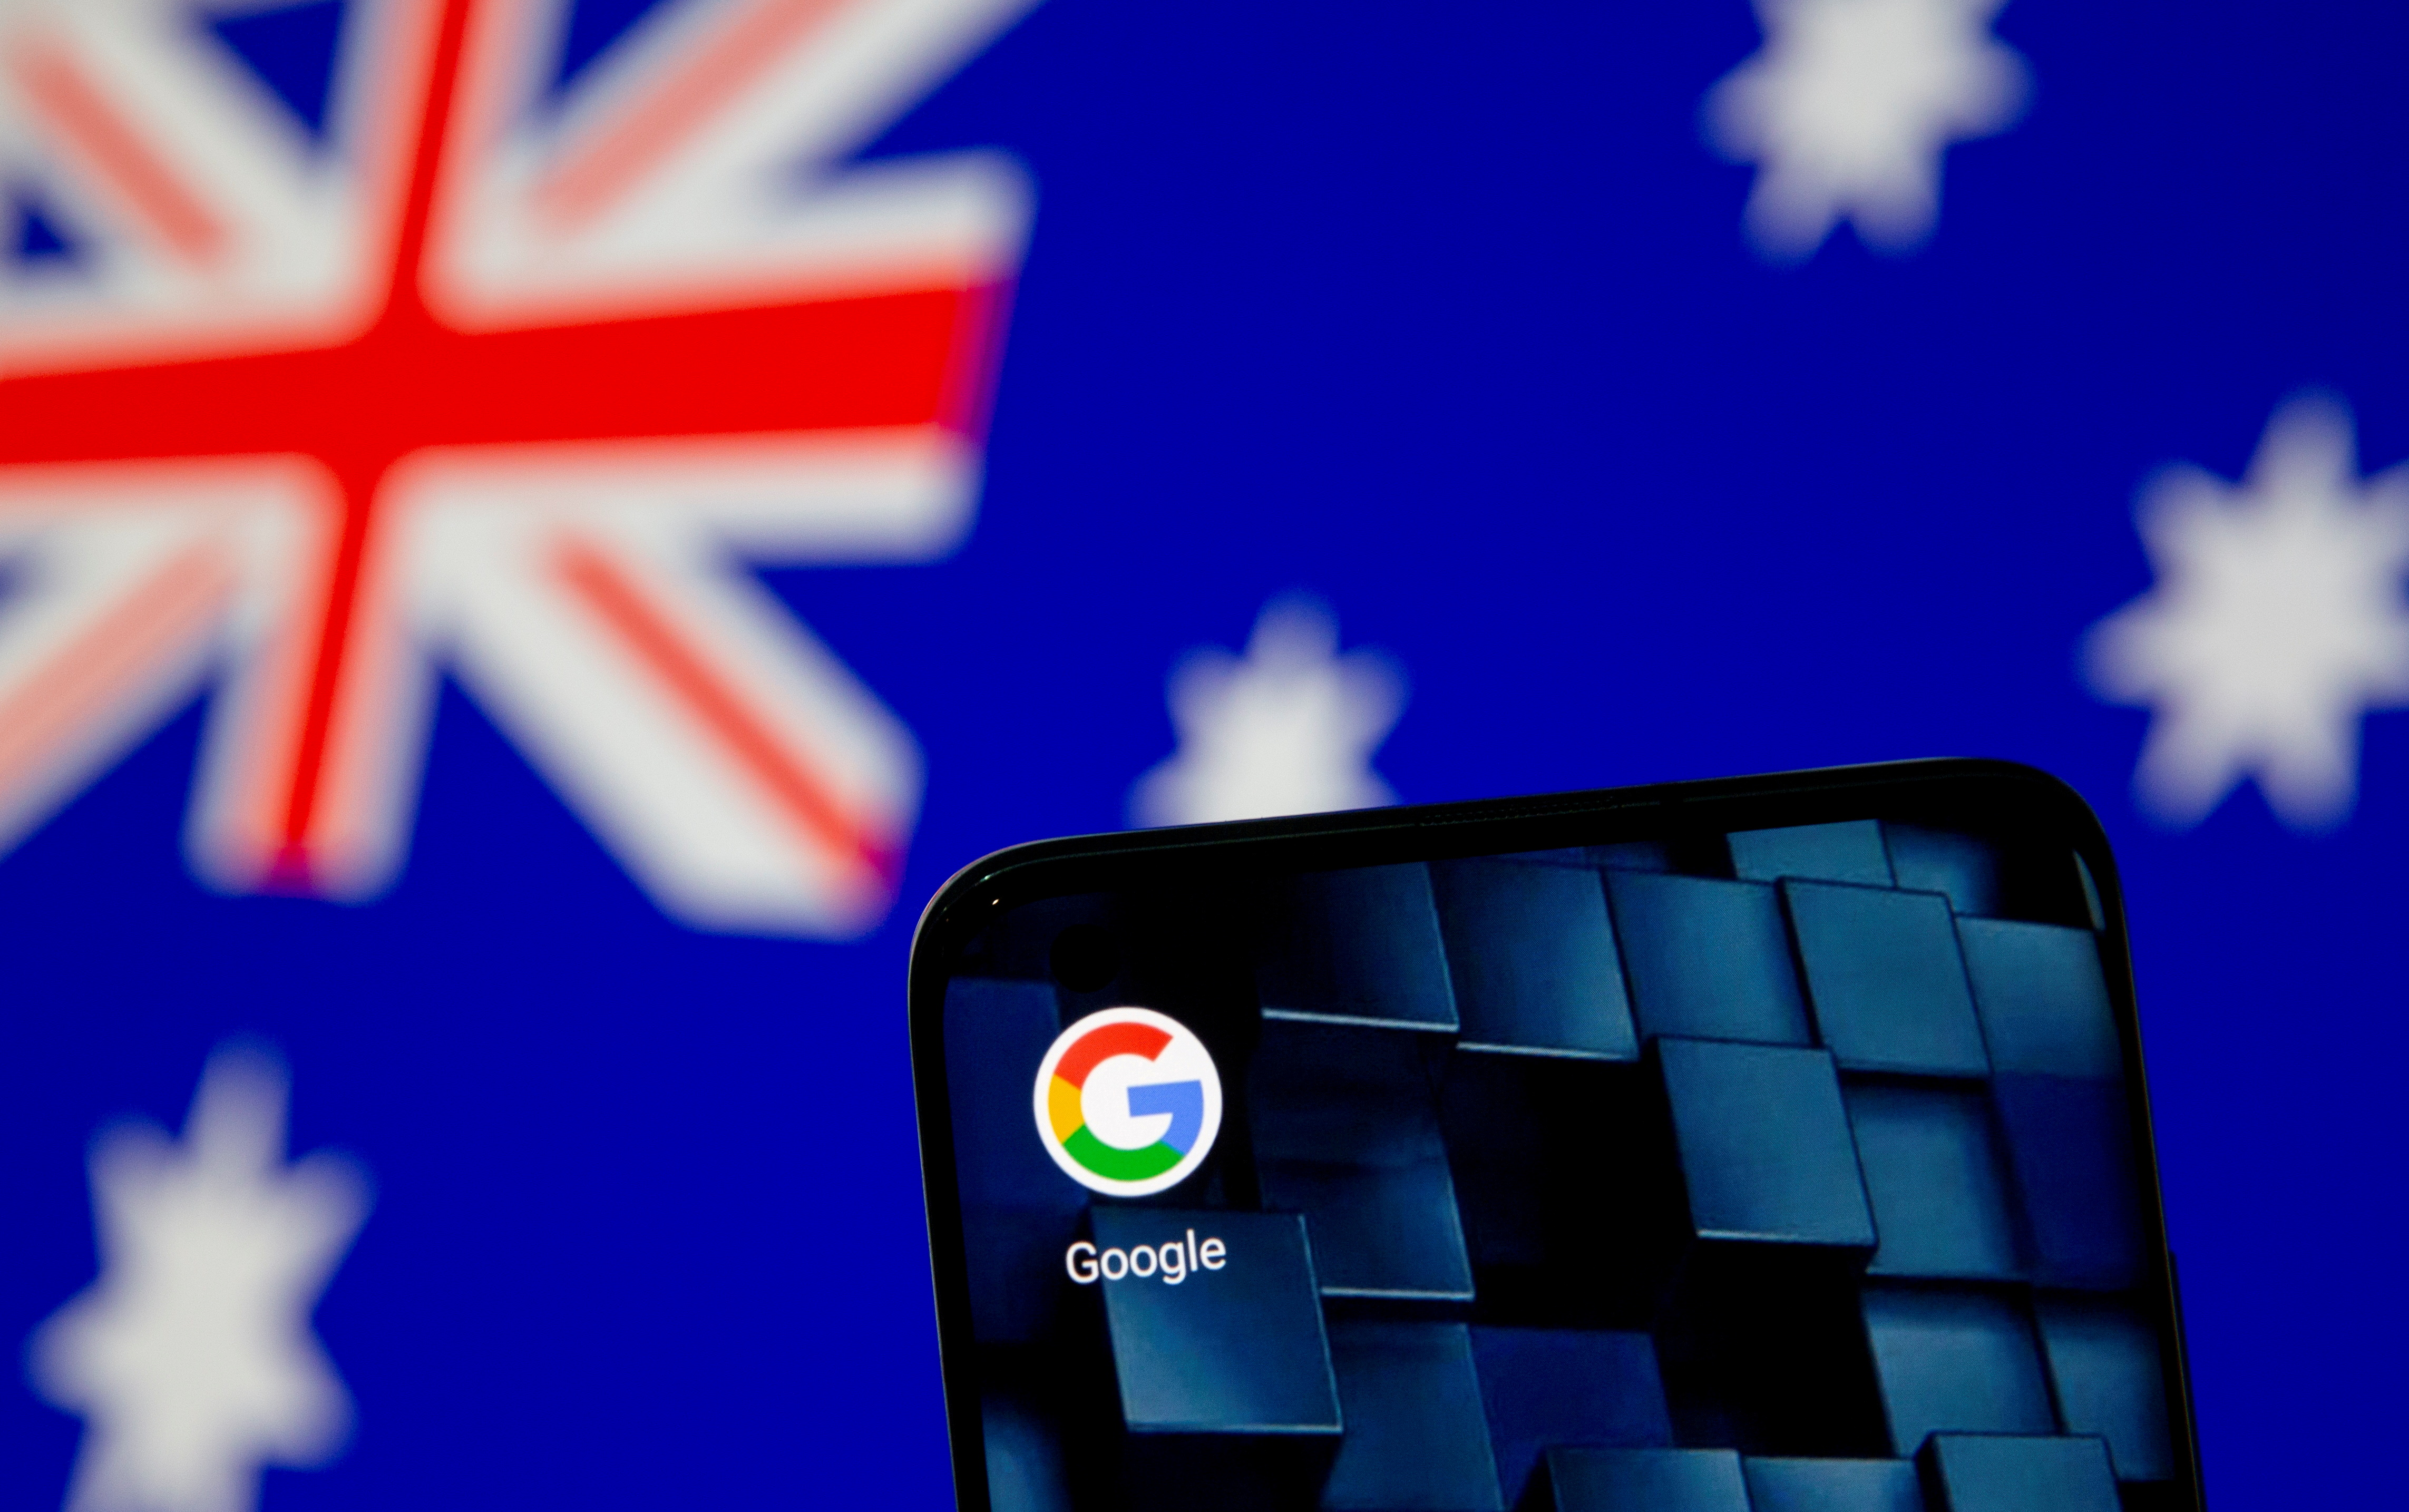 A smartphone with a Google app icon is seen in front of a displayed Australian flag in this illustration, Jan. 22, 2021. REUTERS/Dado Ruvic/Illustration/File Photo/File Photo